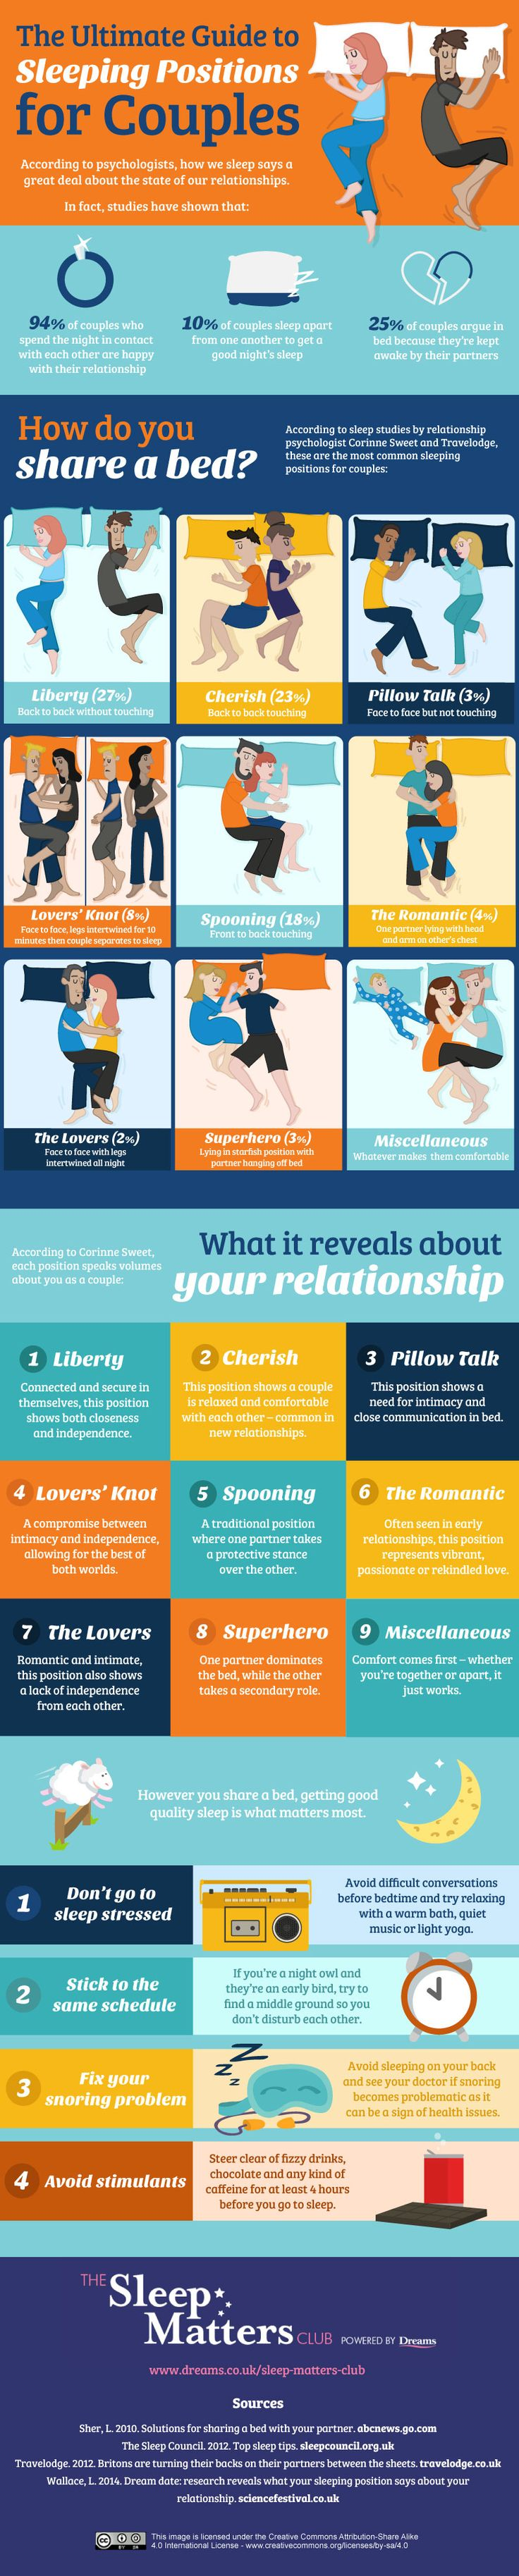 The Ultimate Guide to Sleeping Positions for Couples #infographic | My husband and I: 1. Spooning 2. The Romantic 3. The Lovers